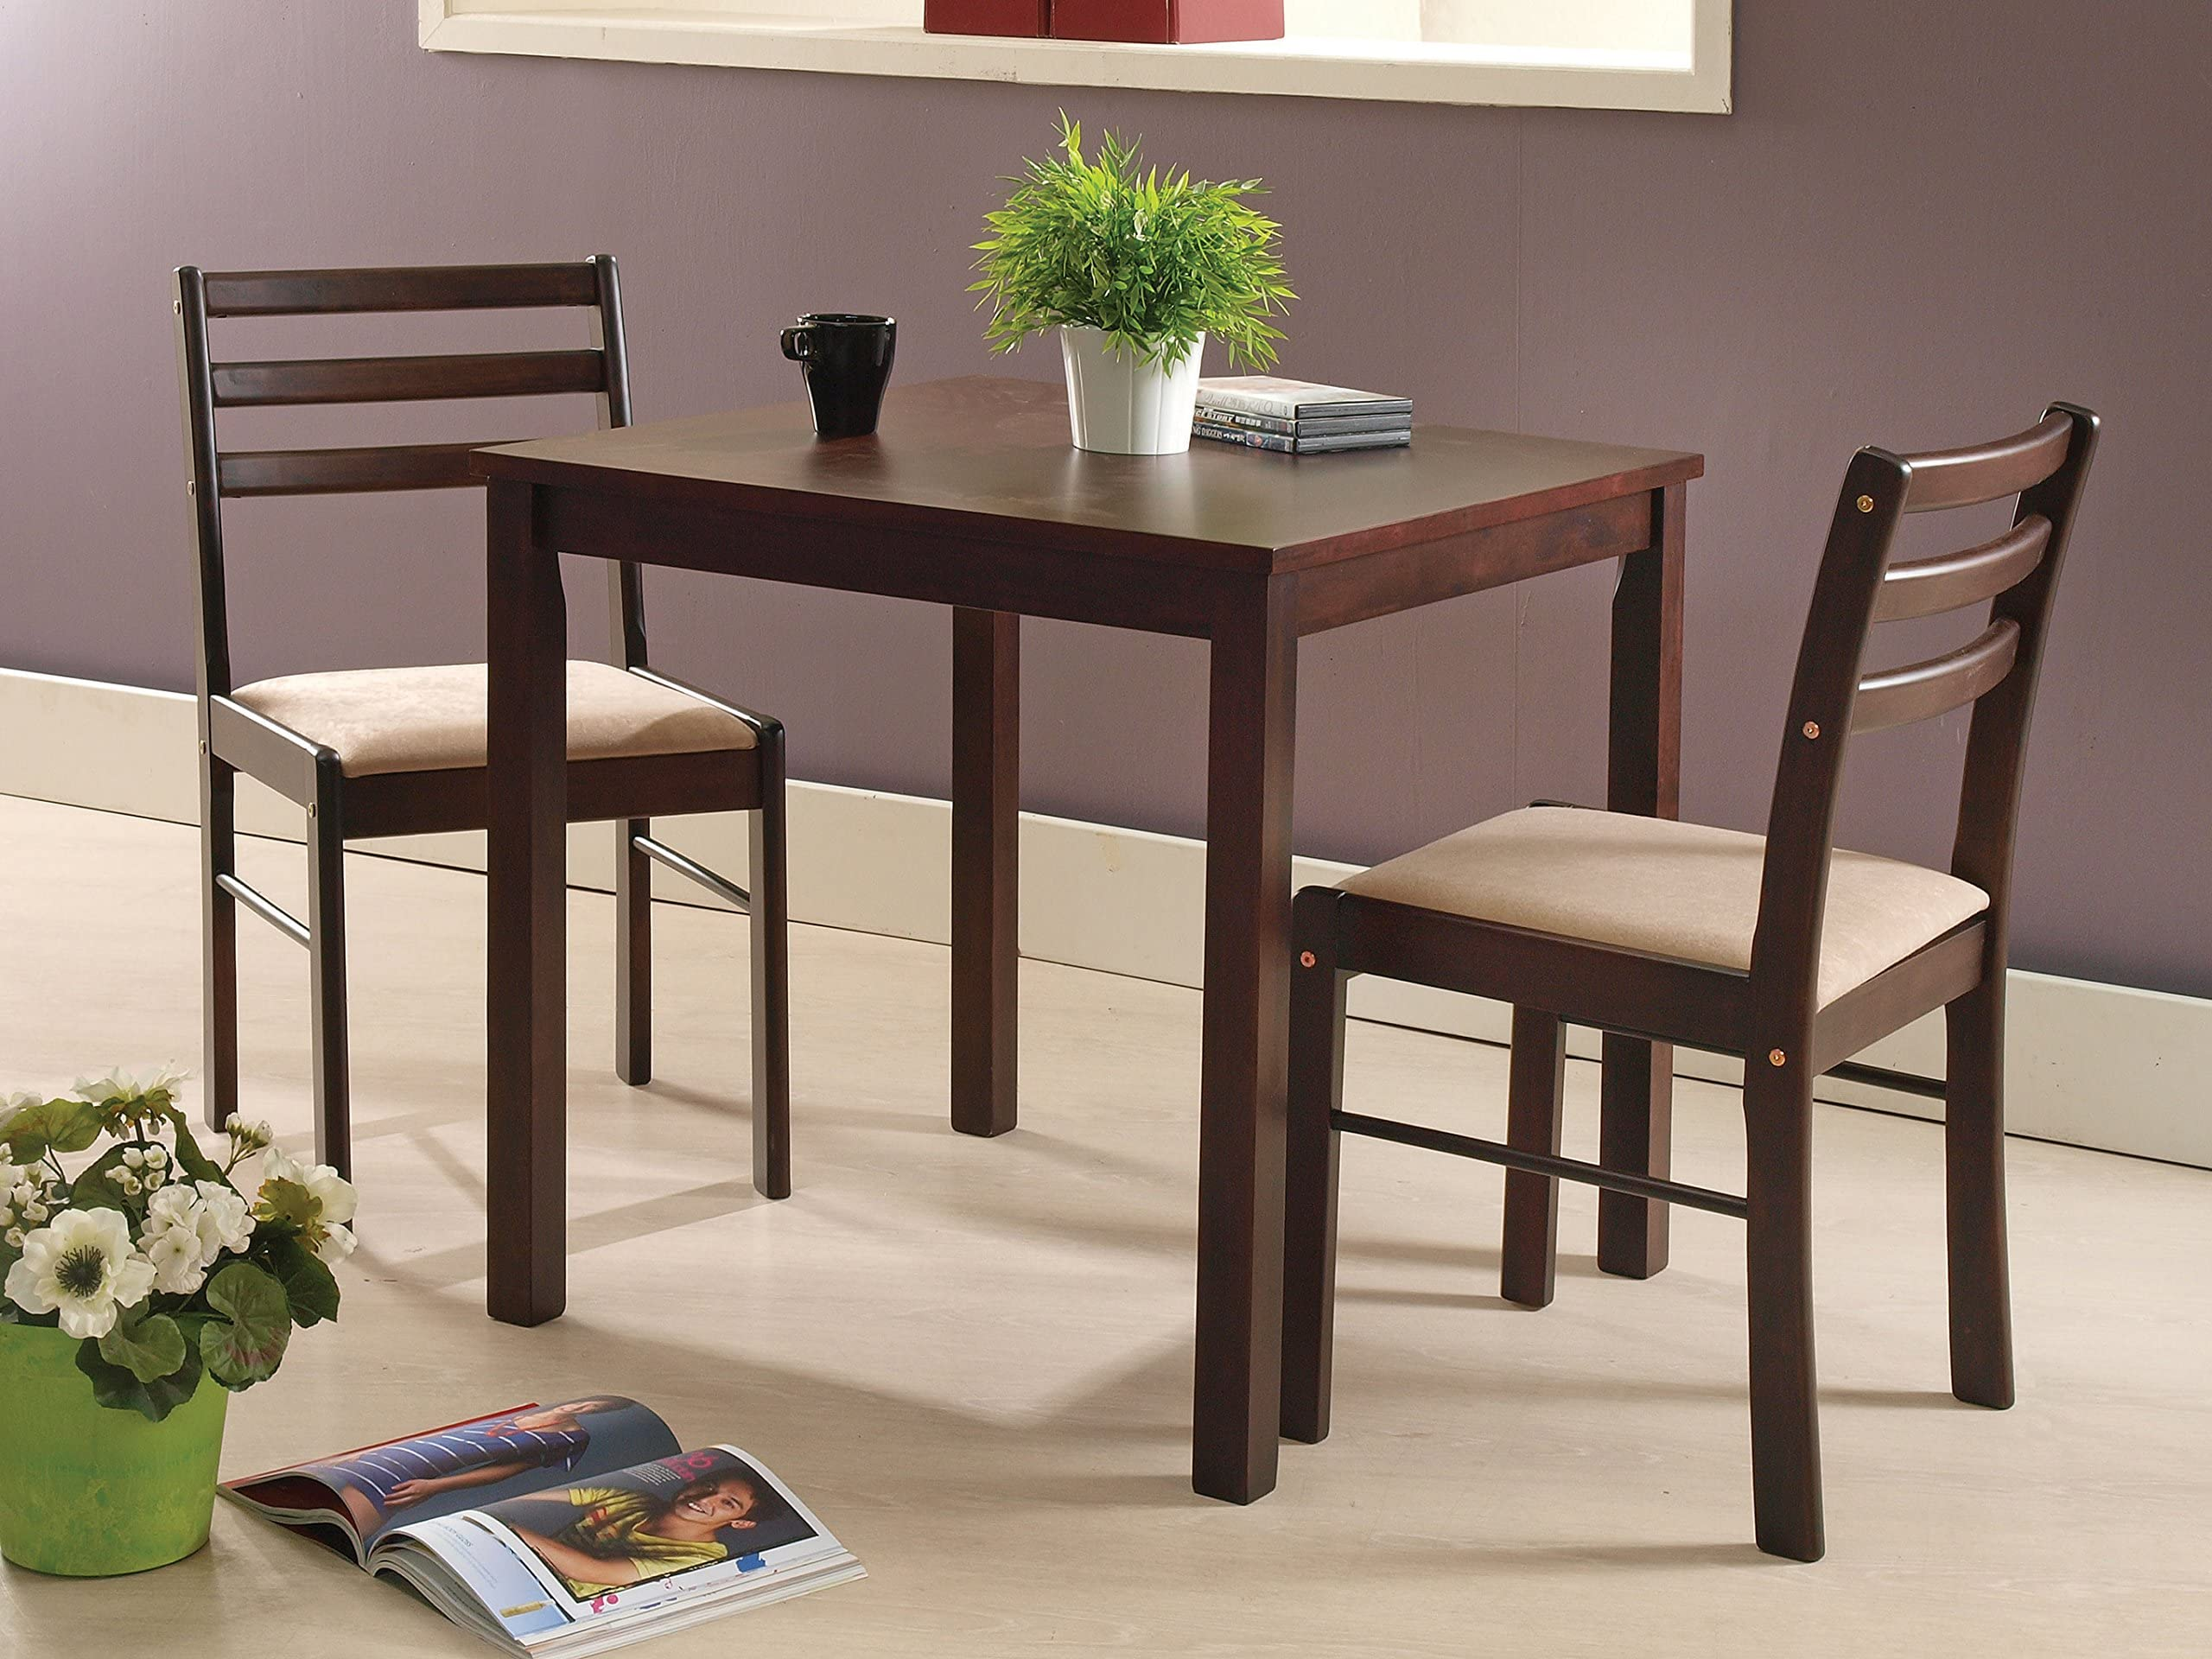 Kings Brand Furniture 3 Piece Dining Room Kitchen Dinette Set Table u0026 2 Chairs  sc 1 st  Amazon.com & Table u0026 Chair Sets | Amazon.com